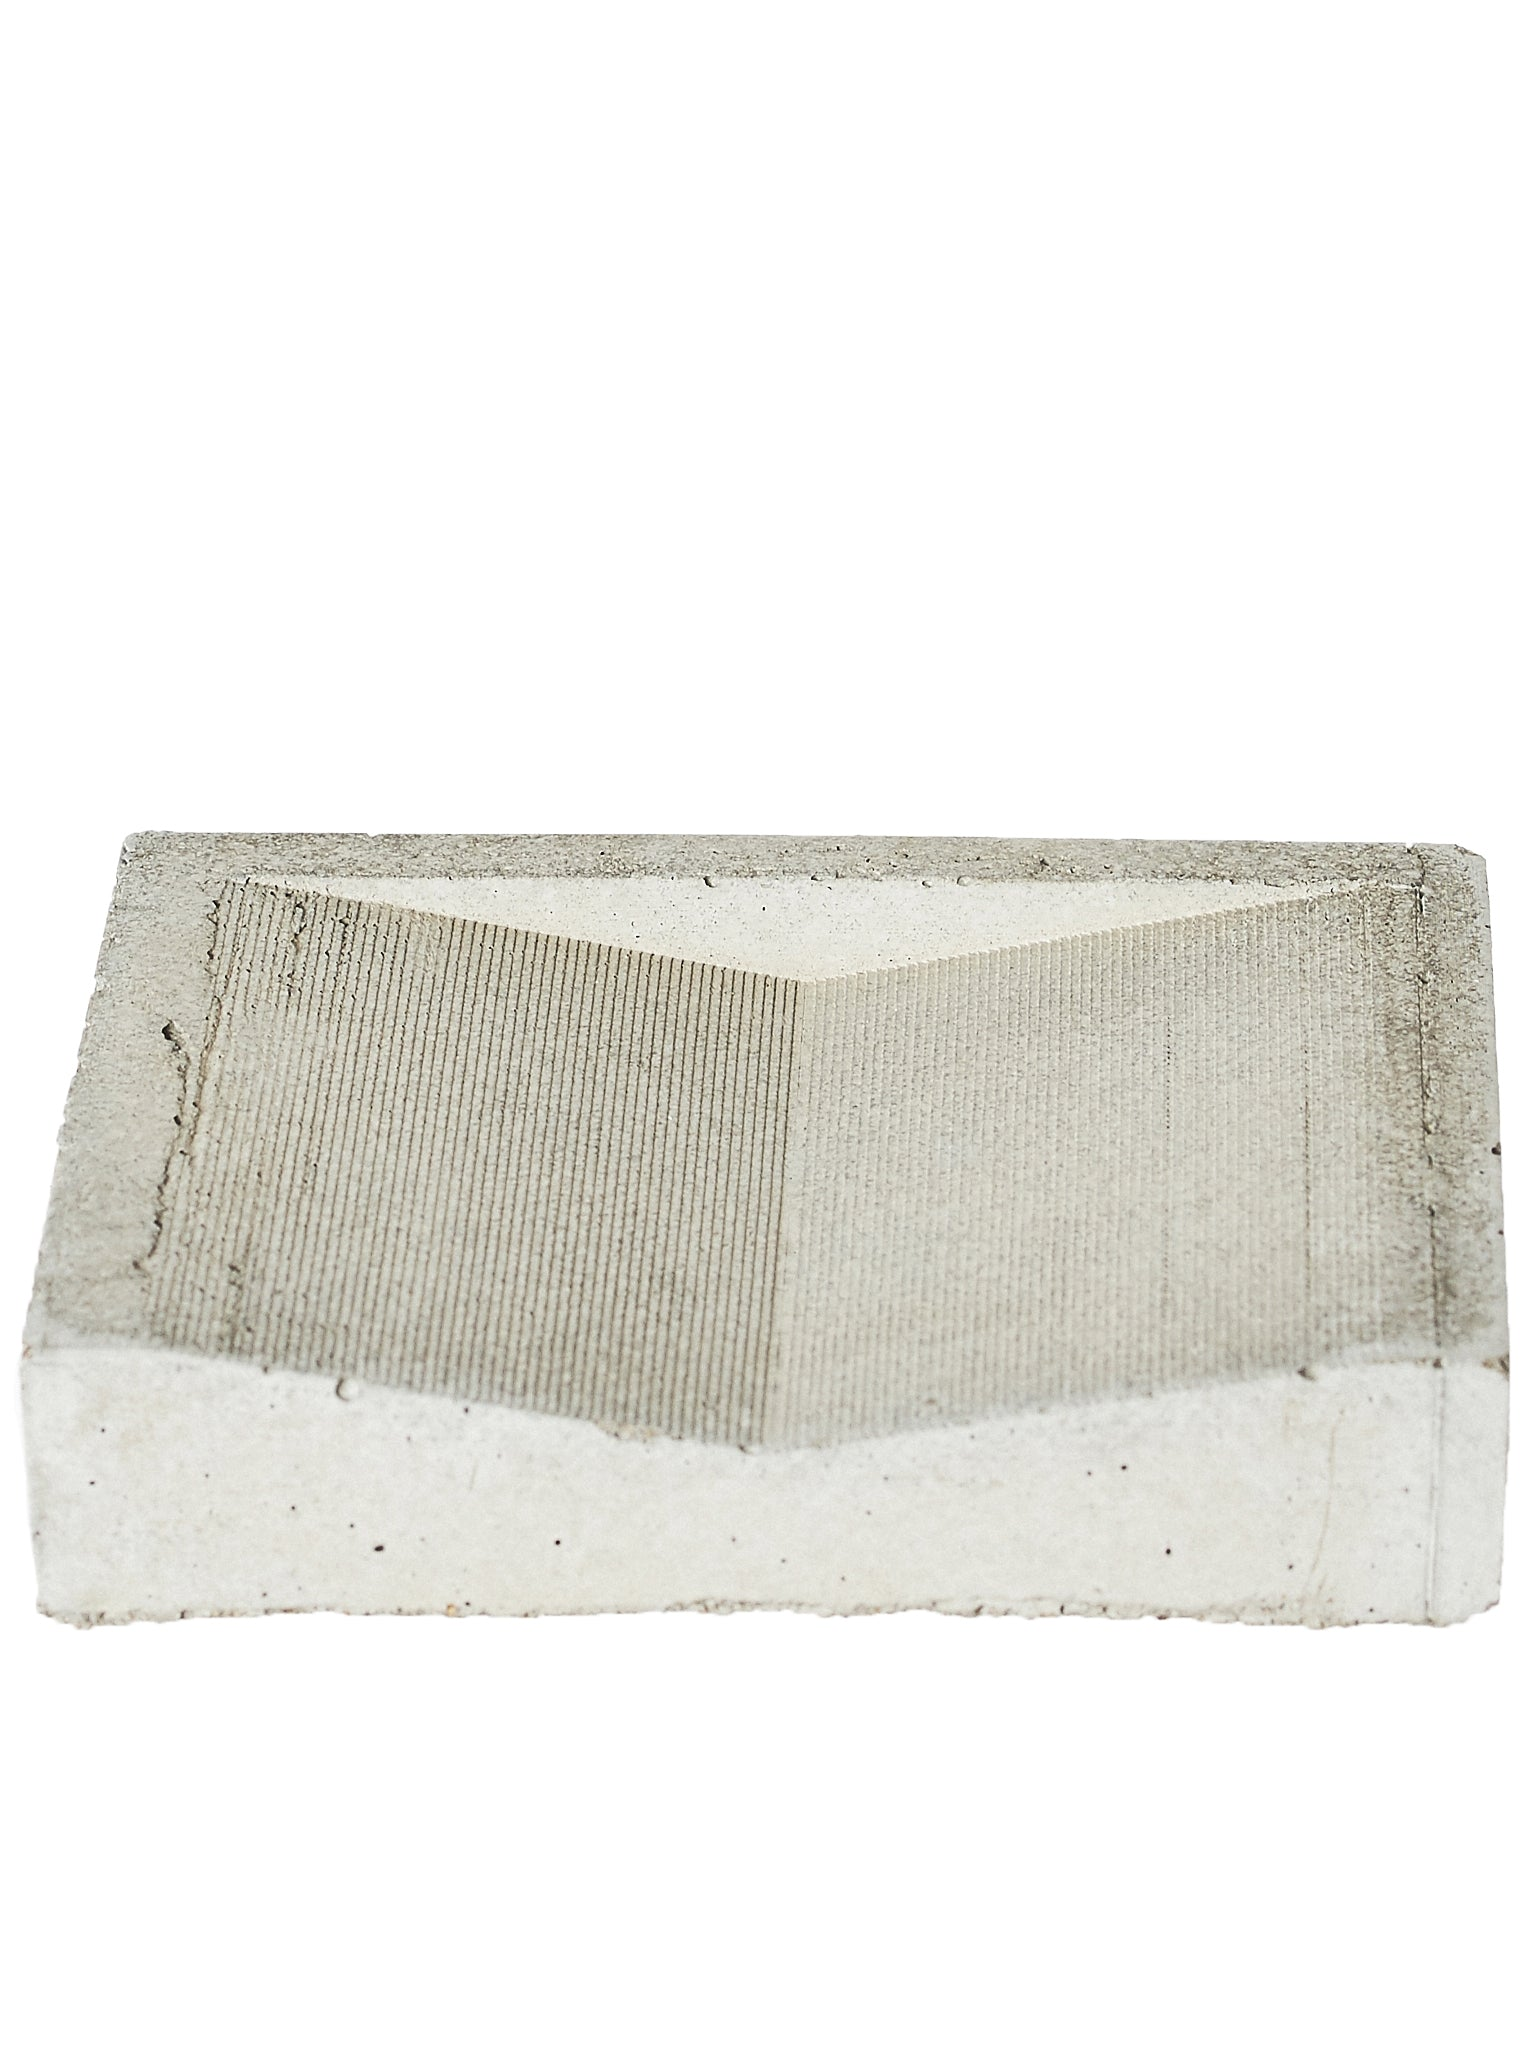 Concrete Objects Tray - Hlorenzo Front 2